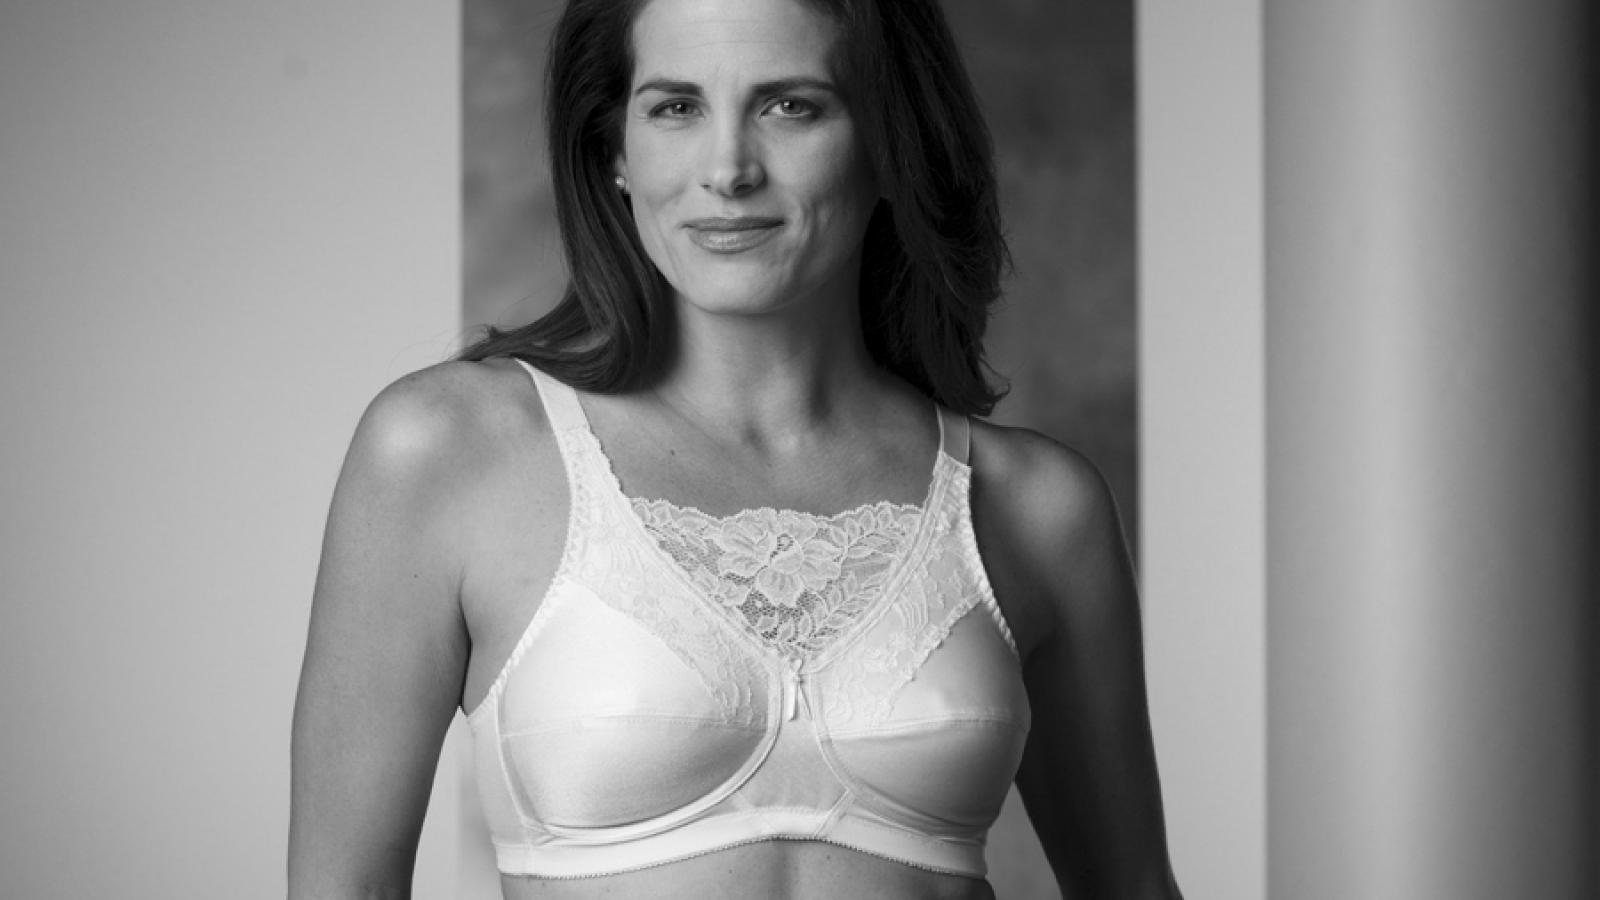 Woman in bra and prosthesis